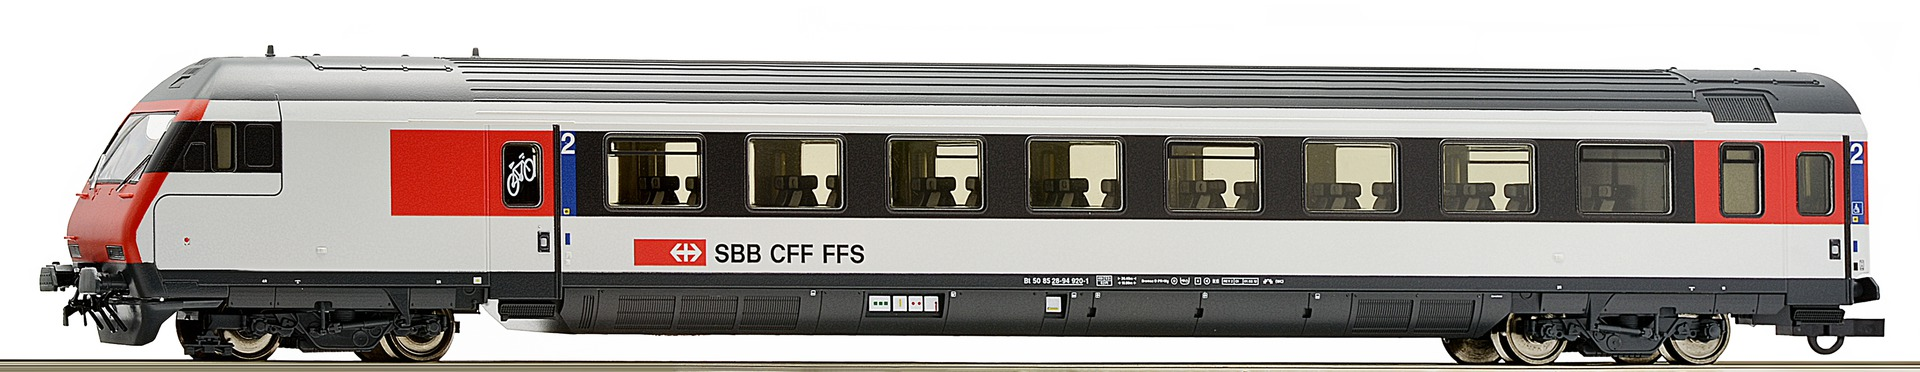 Roco64546 SBB cab car